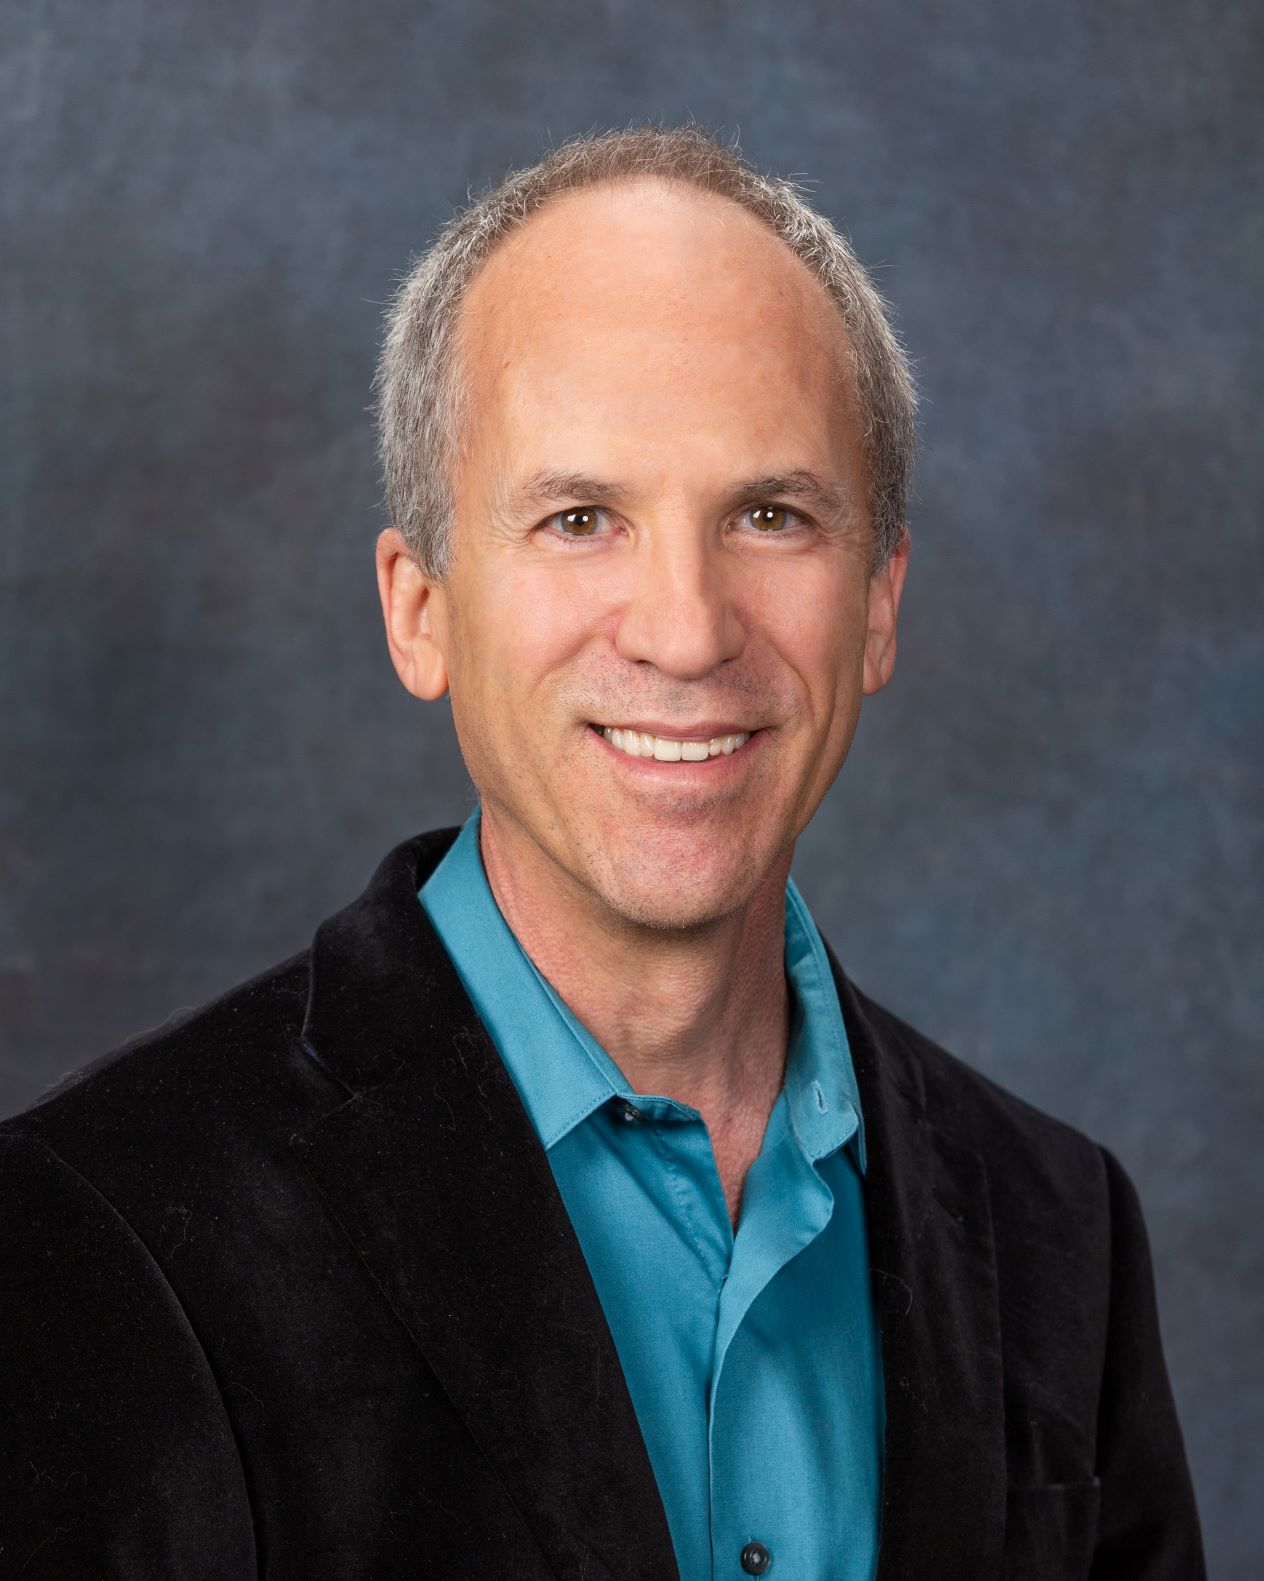 Dr. Eric Endlich of Top College Consultants